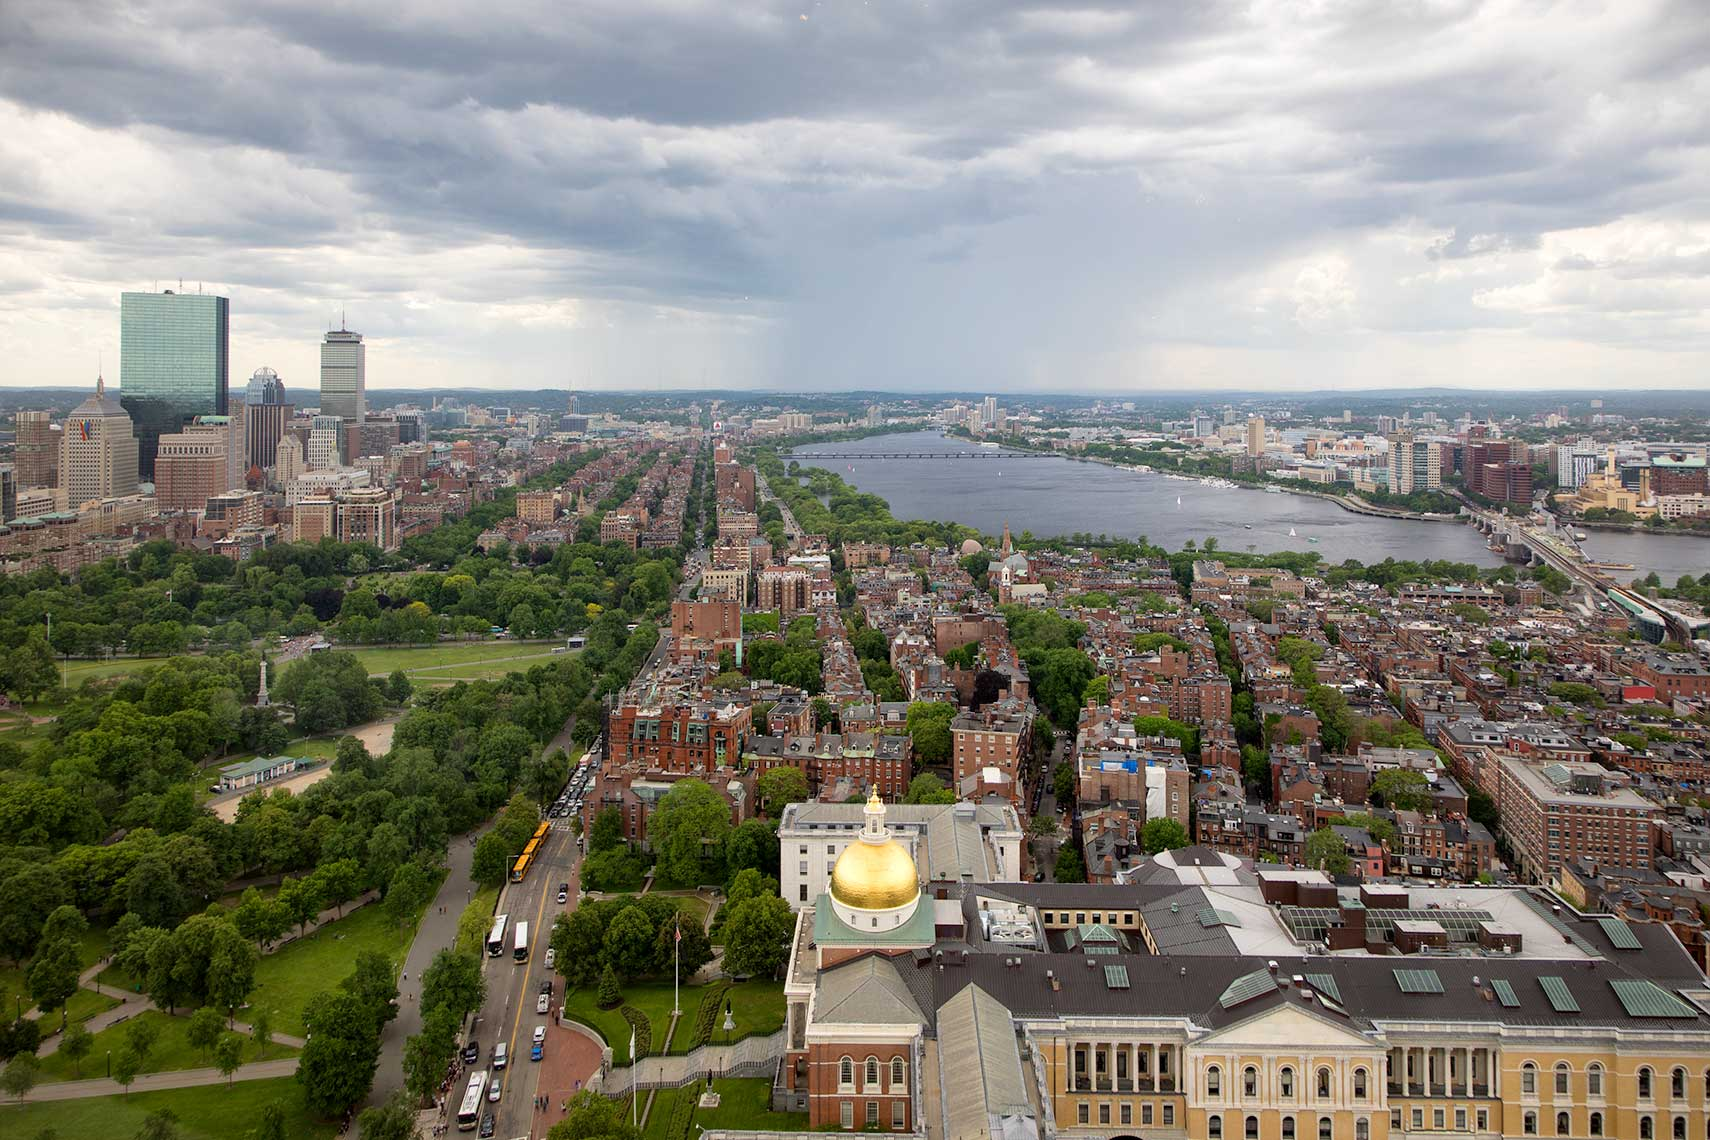 Aerial View of Boston with the Massachusetts State House in foreground